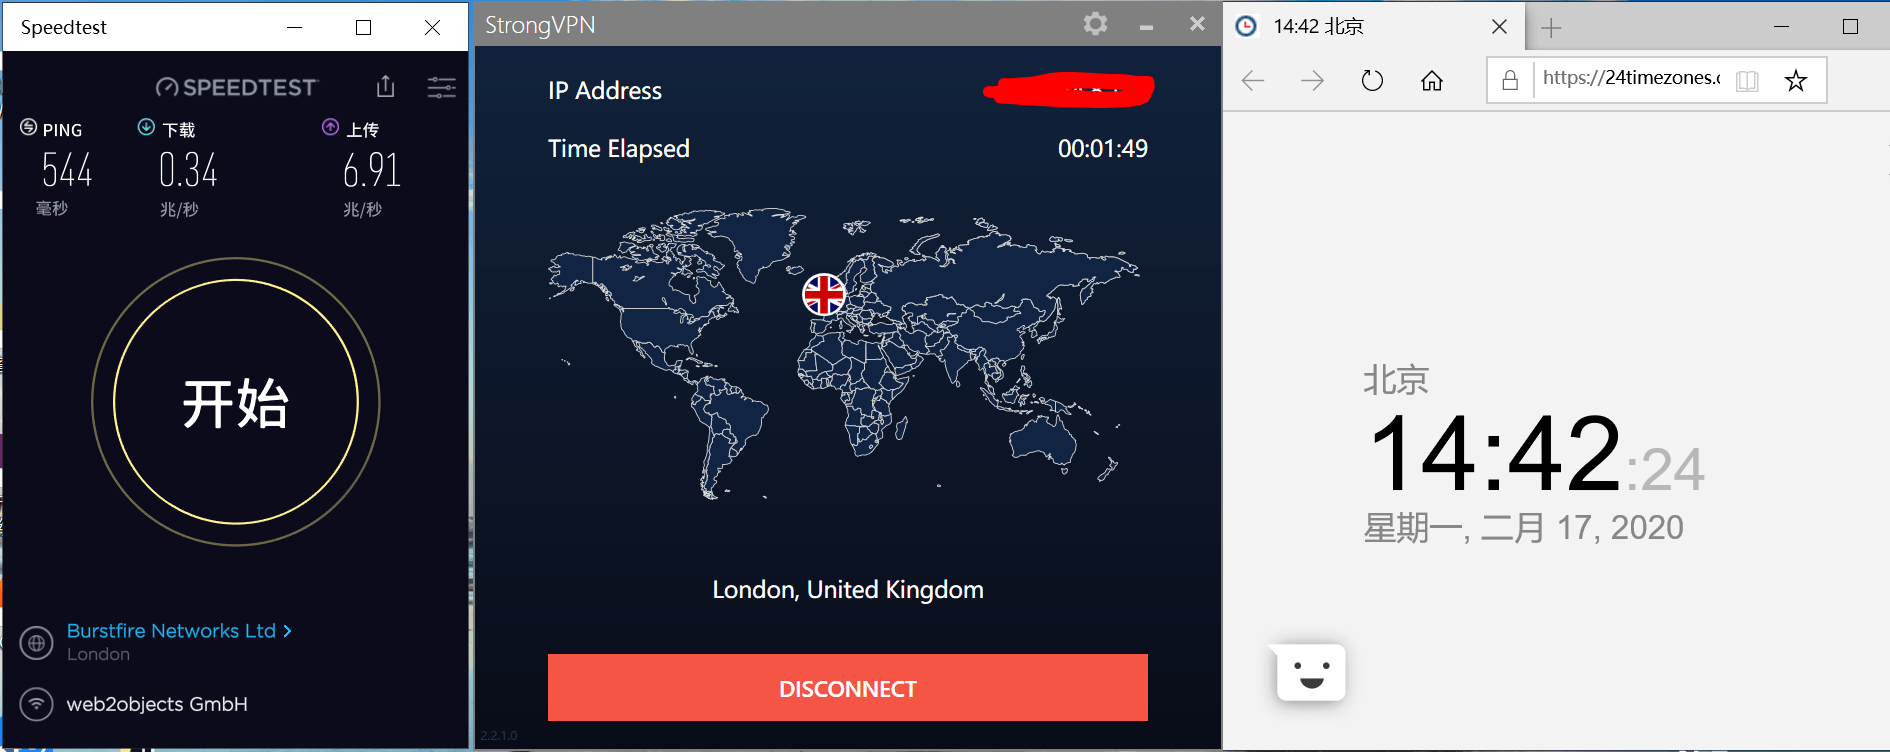 Windows10 StrongVPN London - United Kingdom 中国VPN翻墙 科学上网 SpeedTest测试-20200217